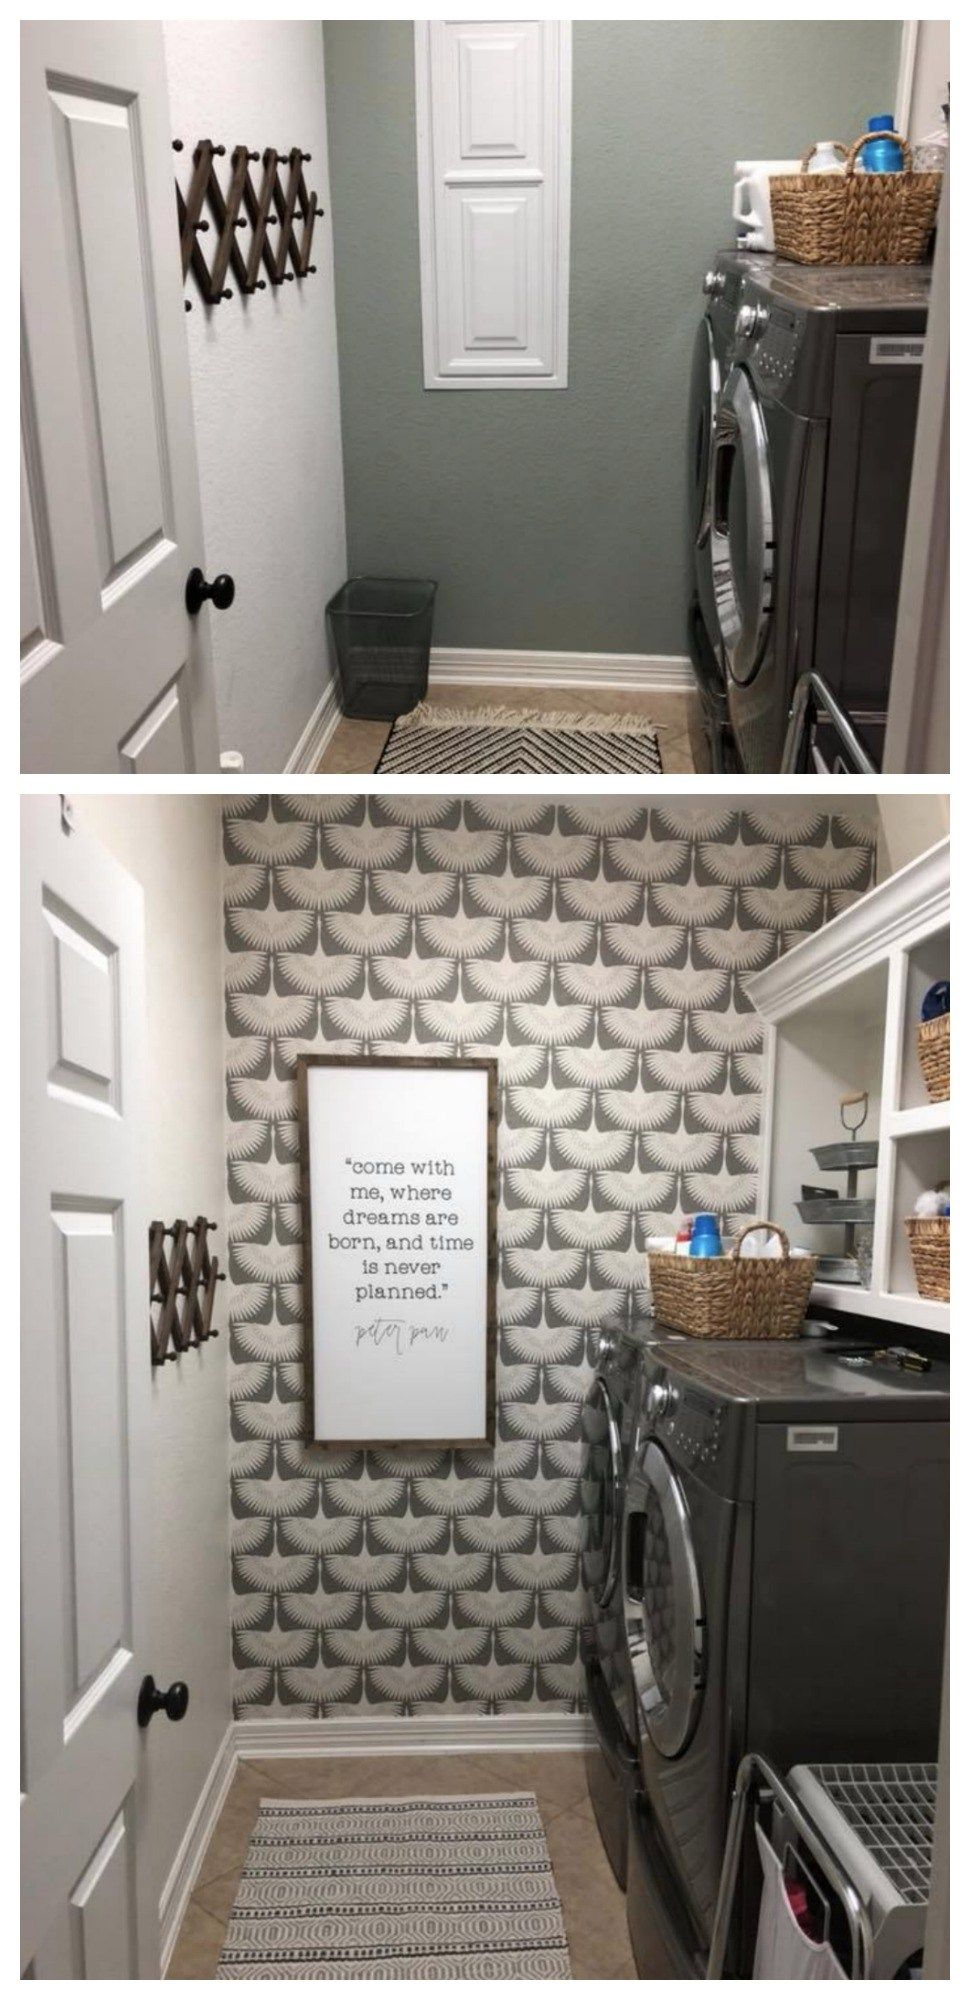 3 Room Hdb Accent Wall: 40 Wallpaper Transformations That Will Blow You Away